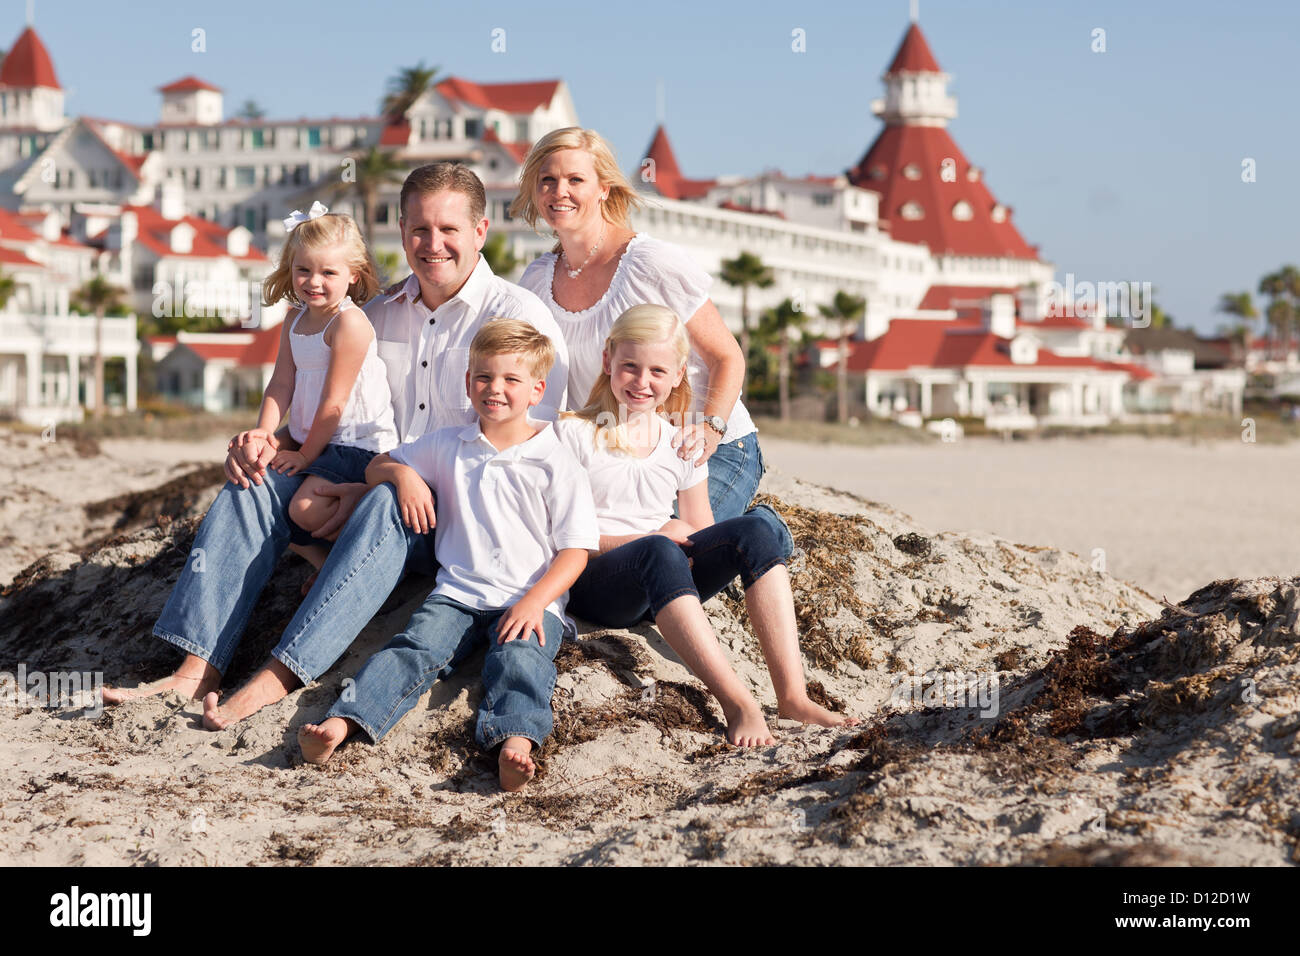 Happy Caucasian Family in Front of Hotel Del Coronado, U.S.A., on a Sunny Afternoon. Stock Photo